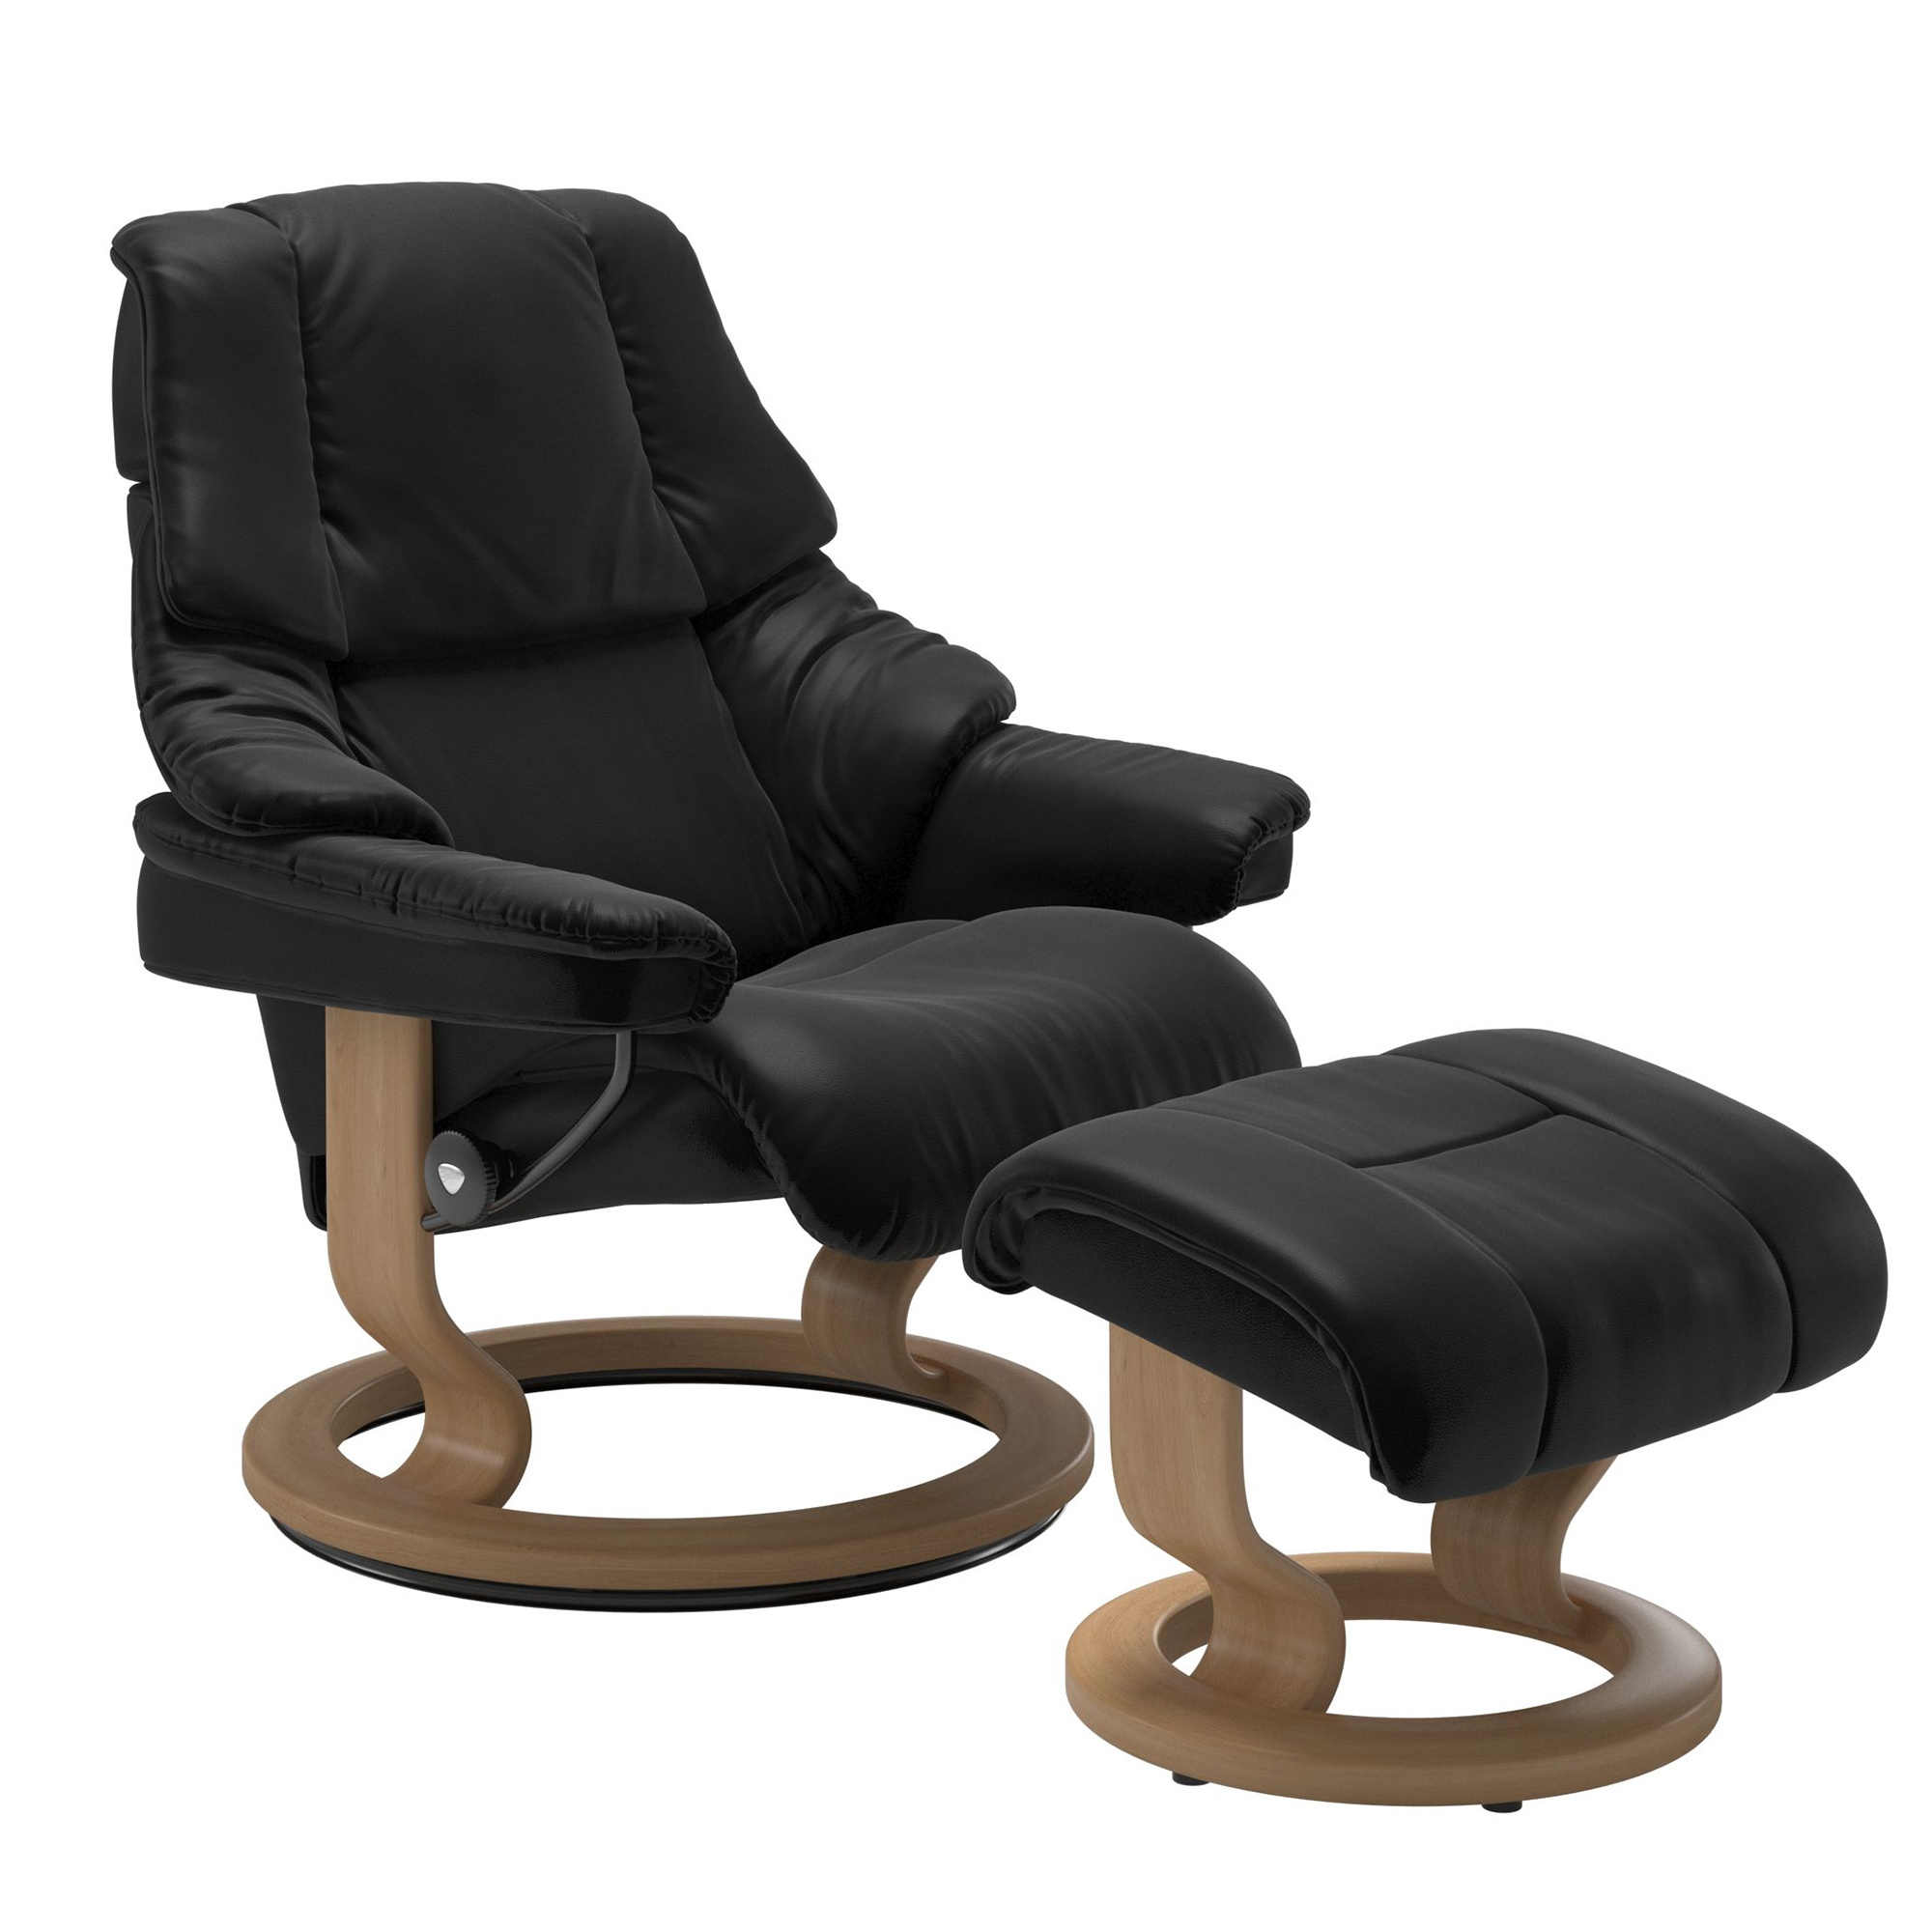 Stressless Chair Prices Stressless Vegas Chair And Stool Cookes Furniture